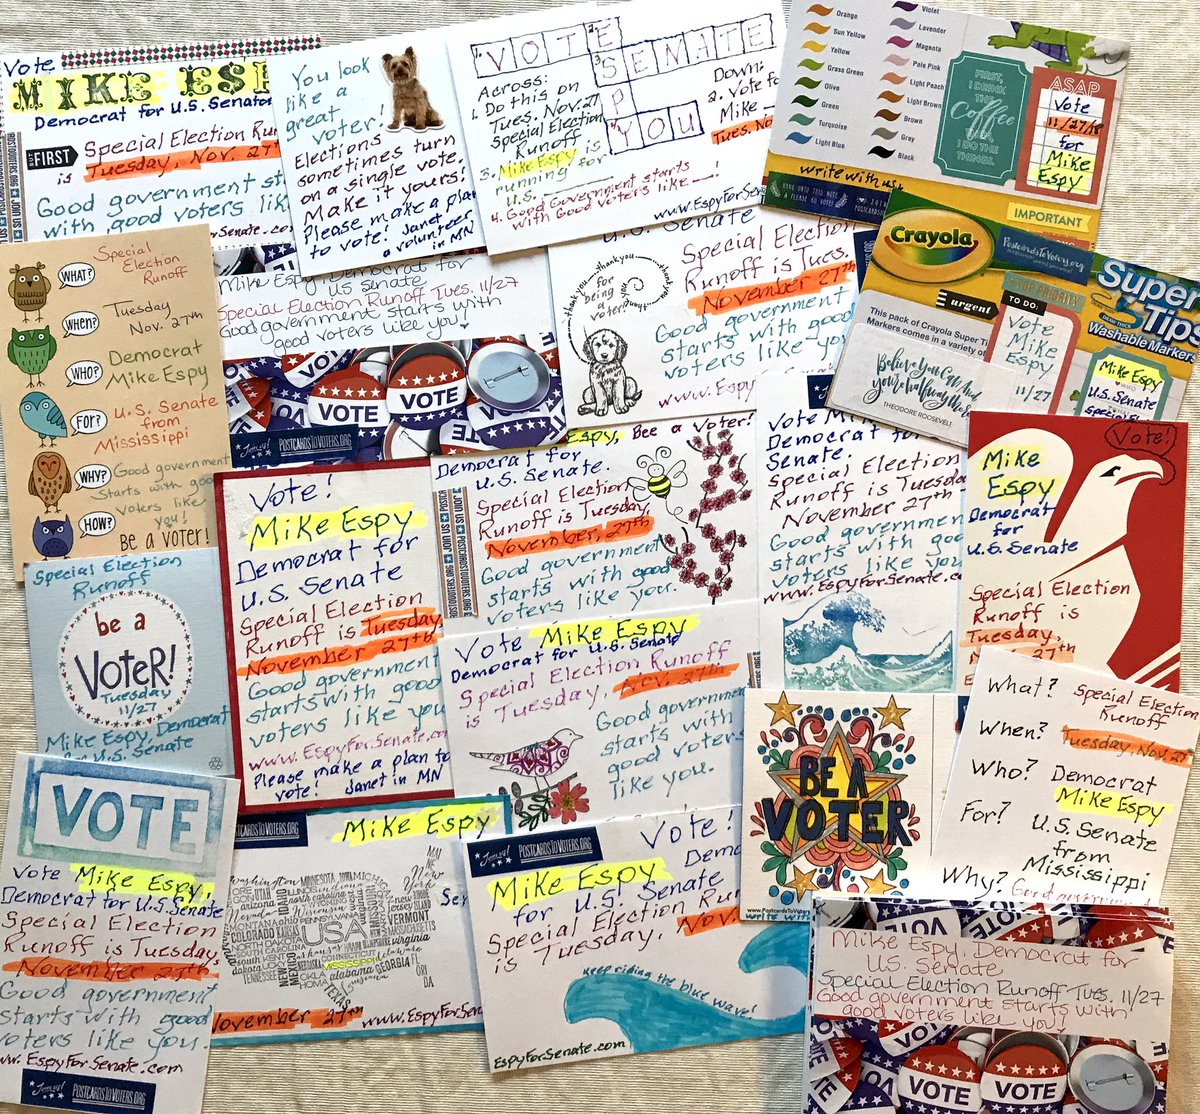 I tried to have plenty of examples for my new writing friends yesterday. A variety of cards to encourage voters to go to the polls on Nov. 27th and vote for Mike Espy in Mississippi #PostCardstoVoters #Espy4Senate #BeAVoter <br>http://pic.twitter.com/1DGuKrACqn